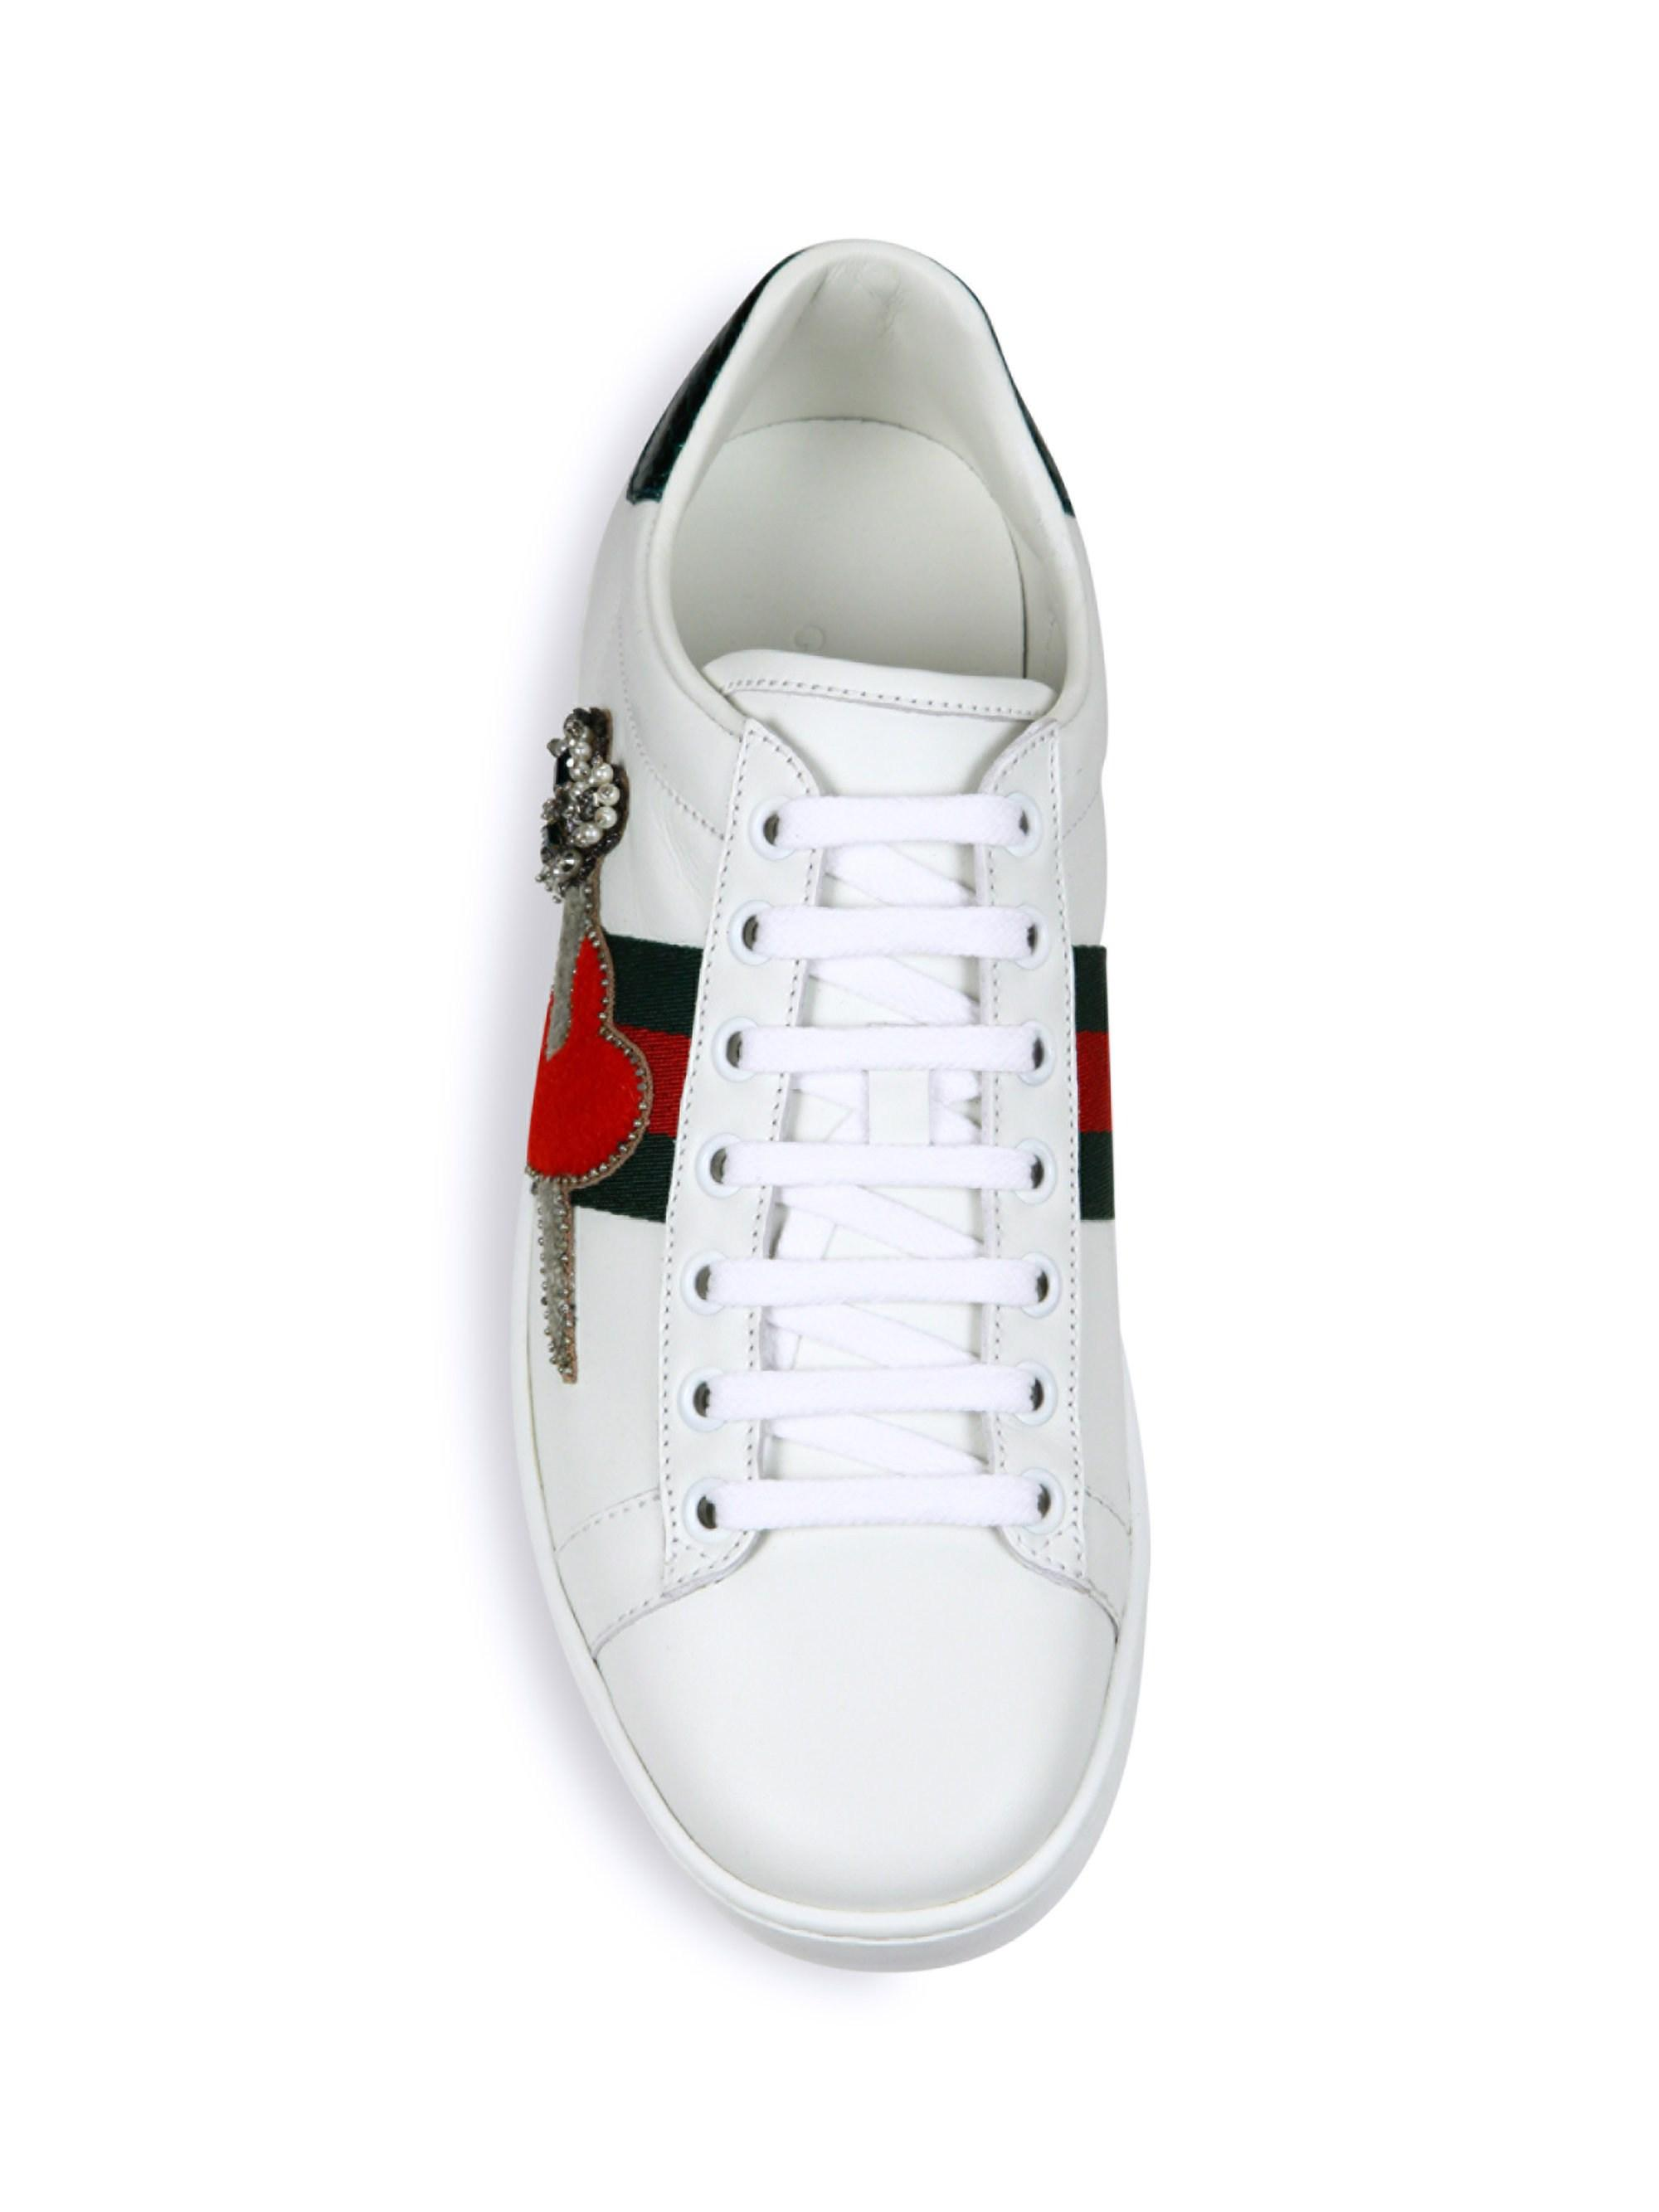 dbe7ccd7336 Lyst - Gucci Women s New Ace Pierced Heart Leather Sneakers - White ...